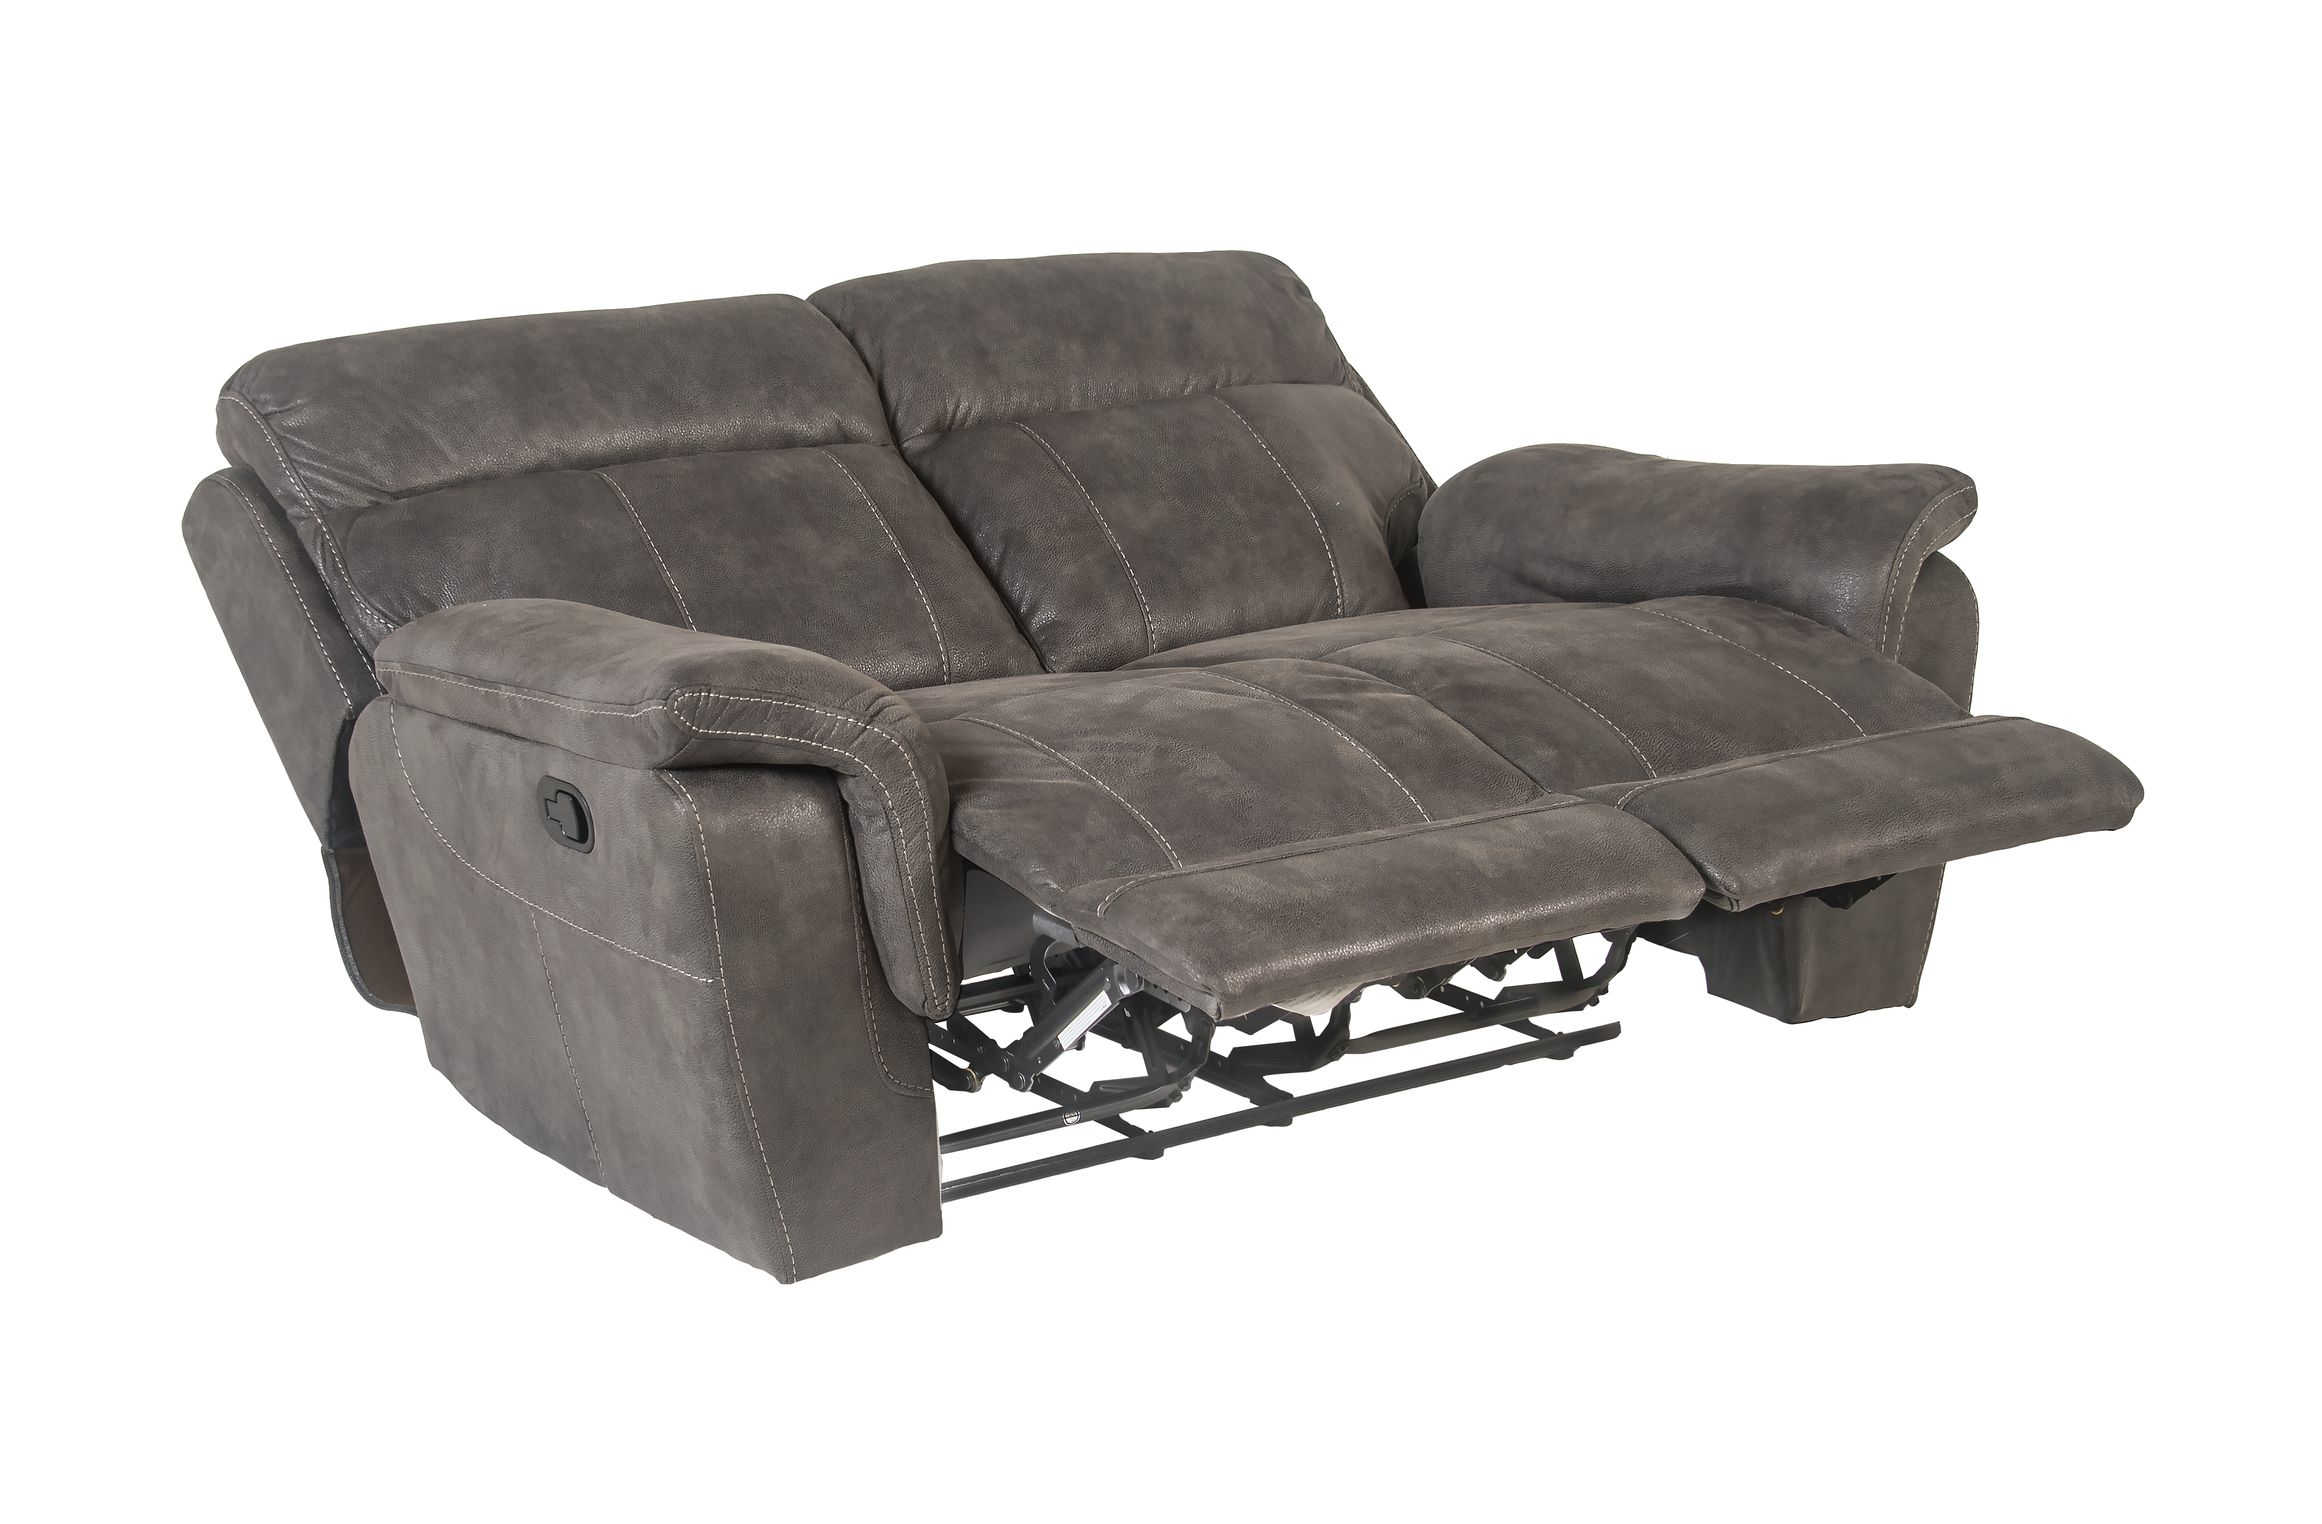 Admirable Steve Silver Rocco Gray Recliner Loveseat Pabps2019 Chair Design Images Pabps2019Com